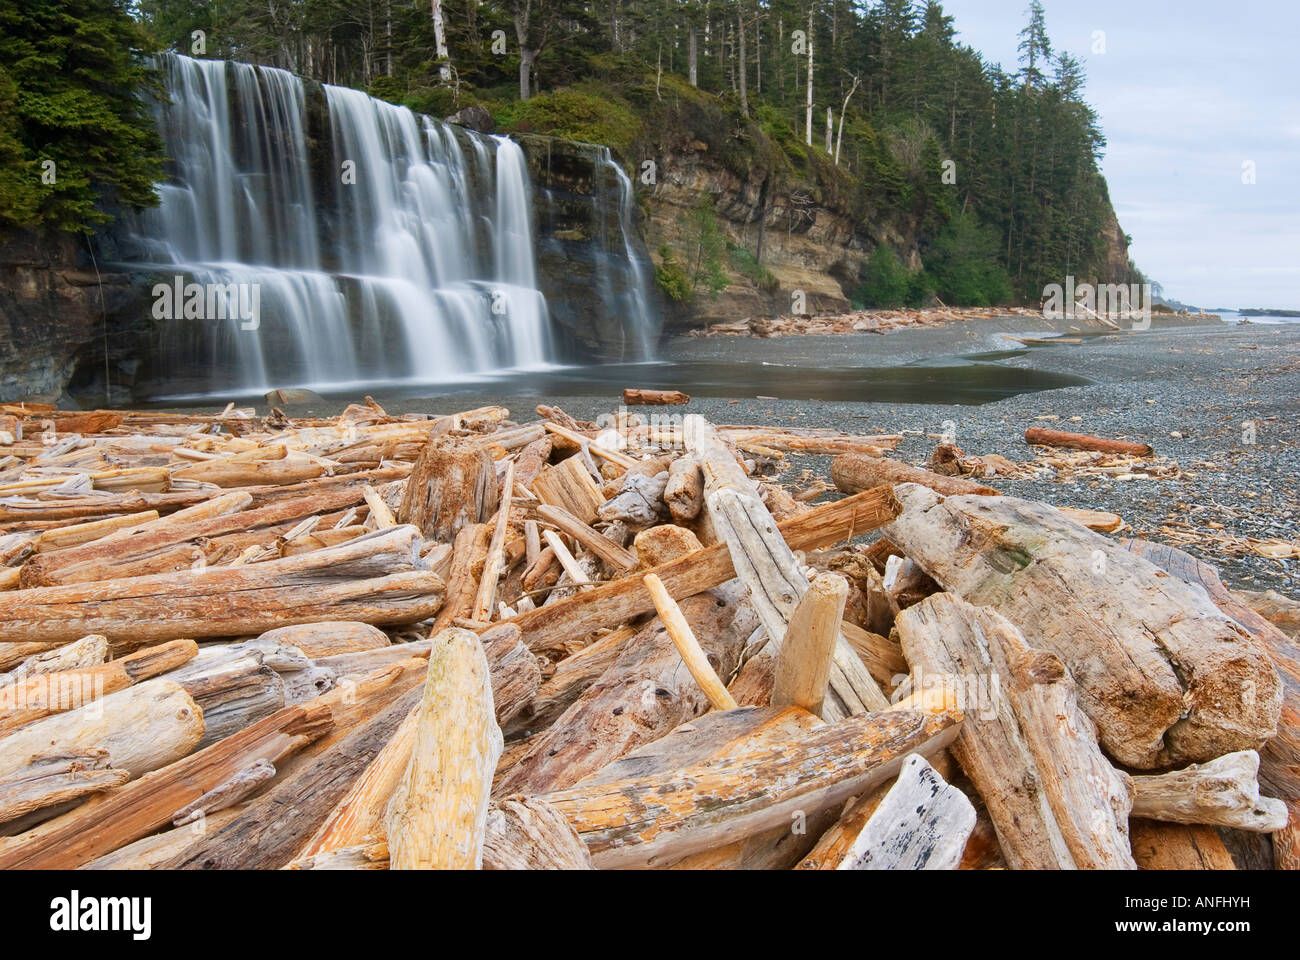 National Parks In Vancouver Island